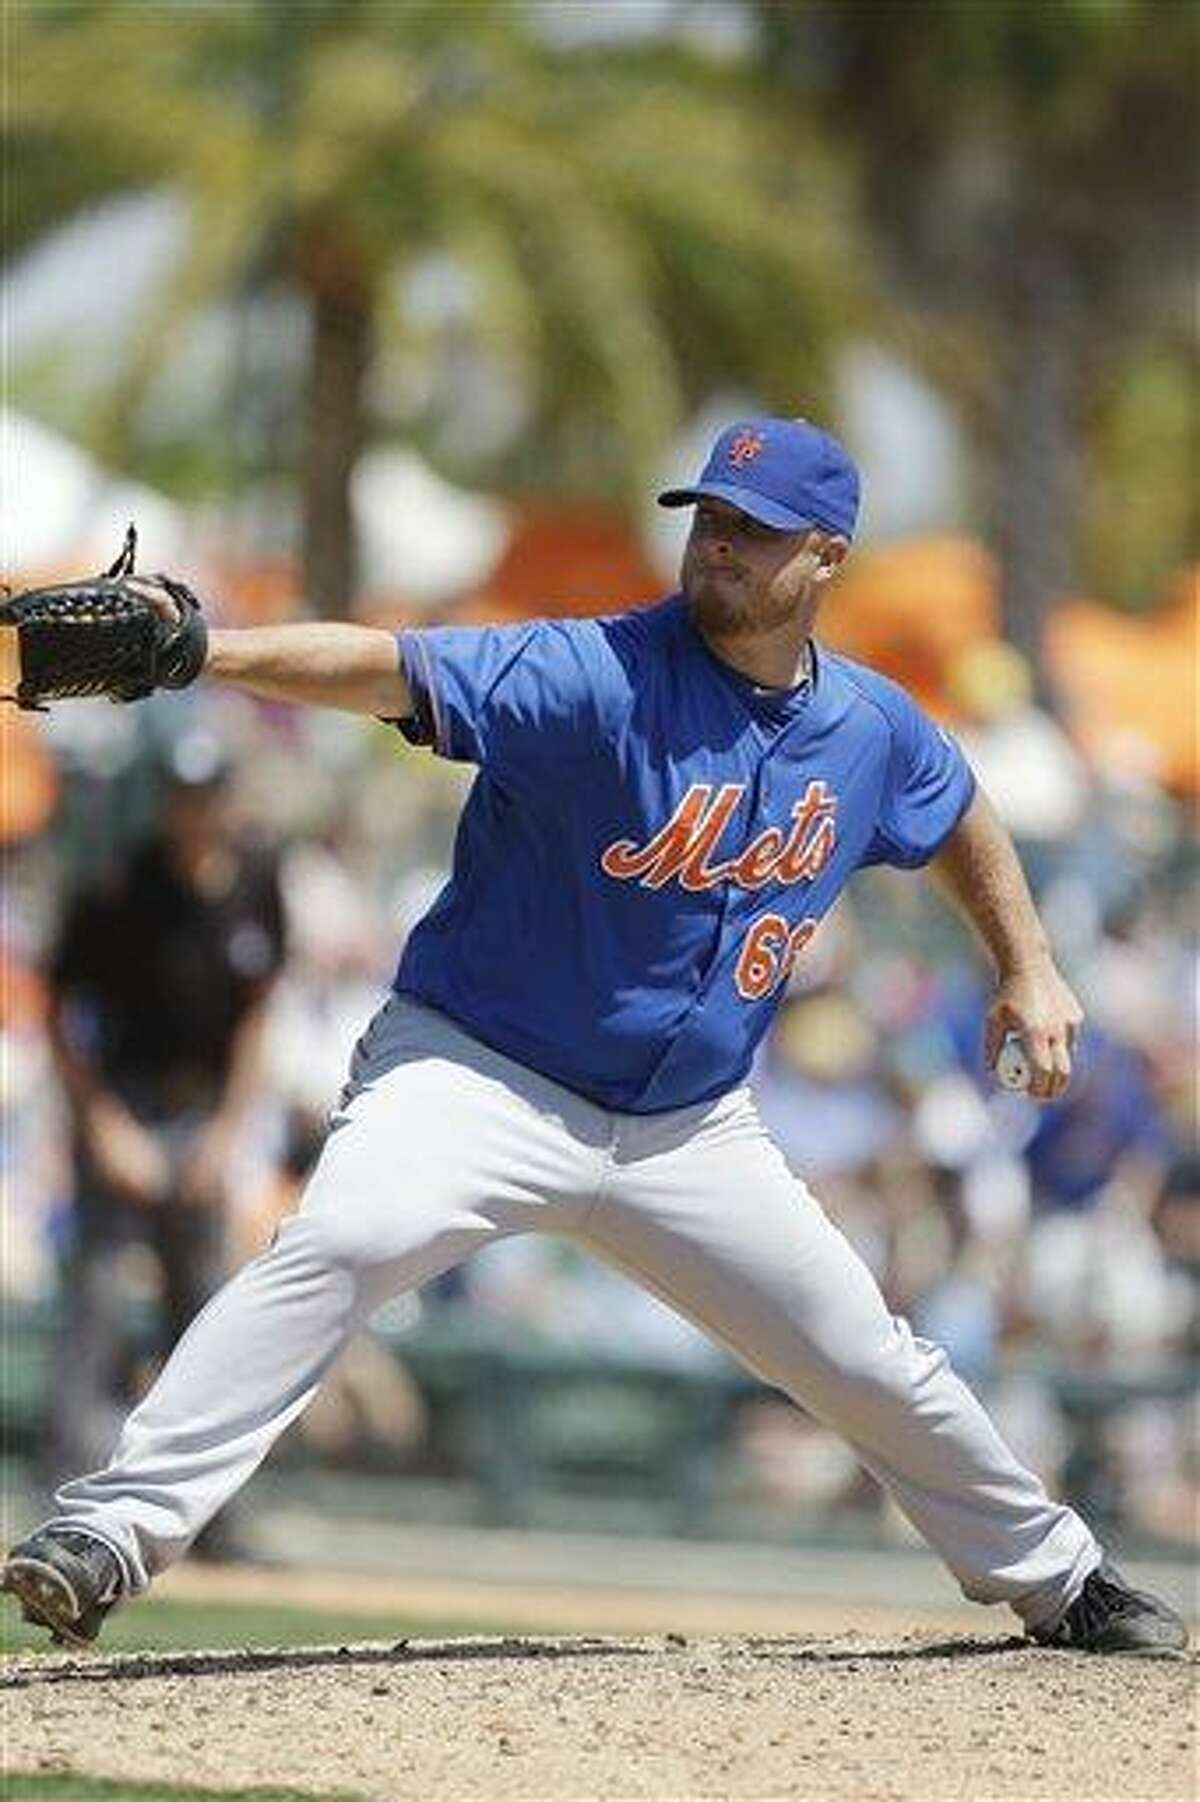 New York Mets relief pitcher Josh Edgin prepares to throw during the seventh inning of an exhibition spring training baseball game against the against the Baltimore Orioles, Saturday, March 30, 2013, in Sarasota, Fla. (AP Photo/Carlos Osorio)